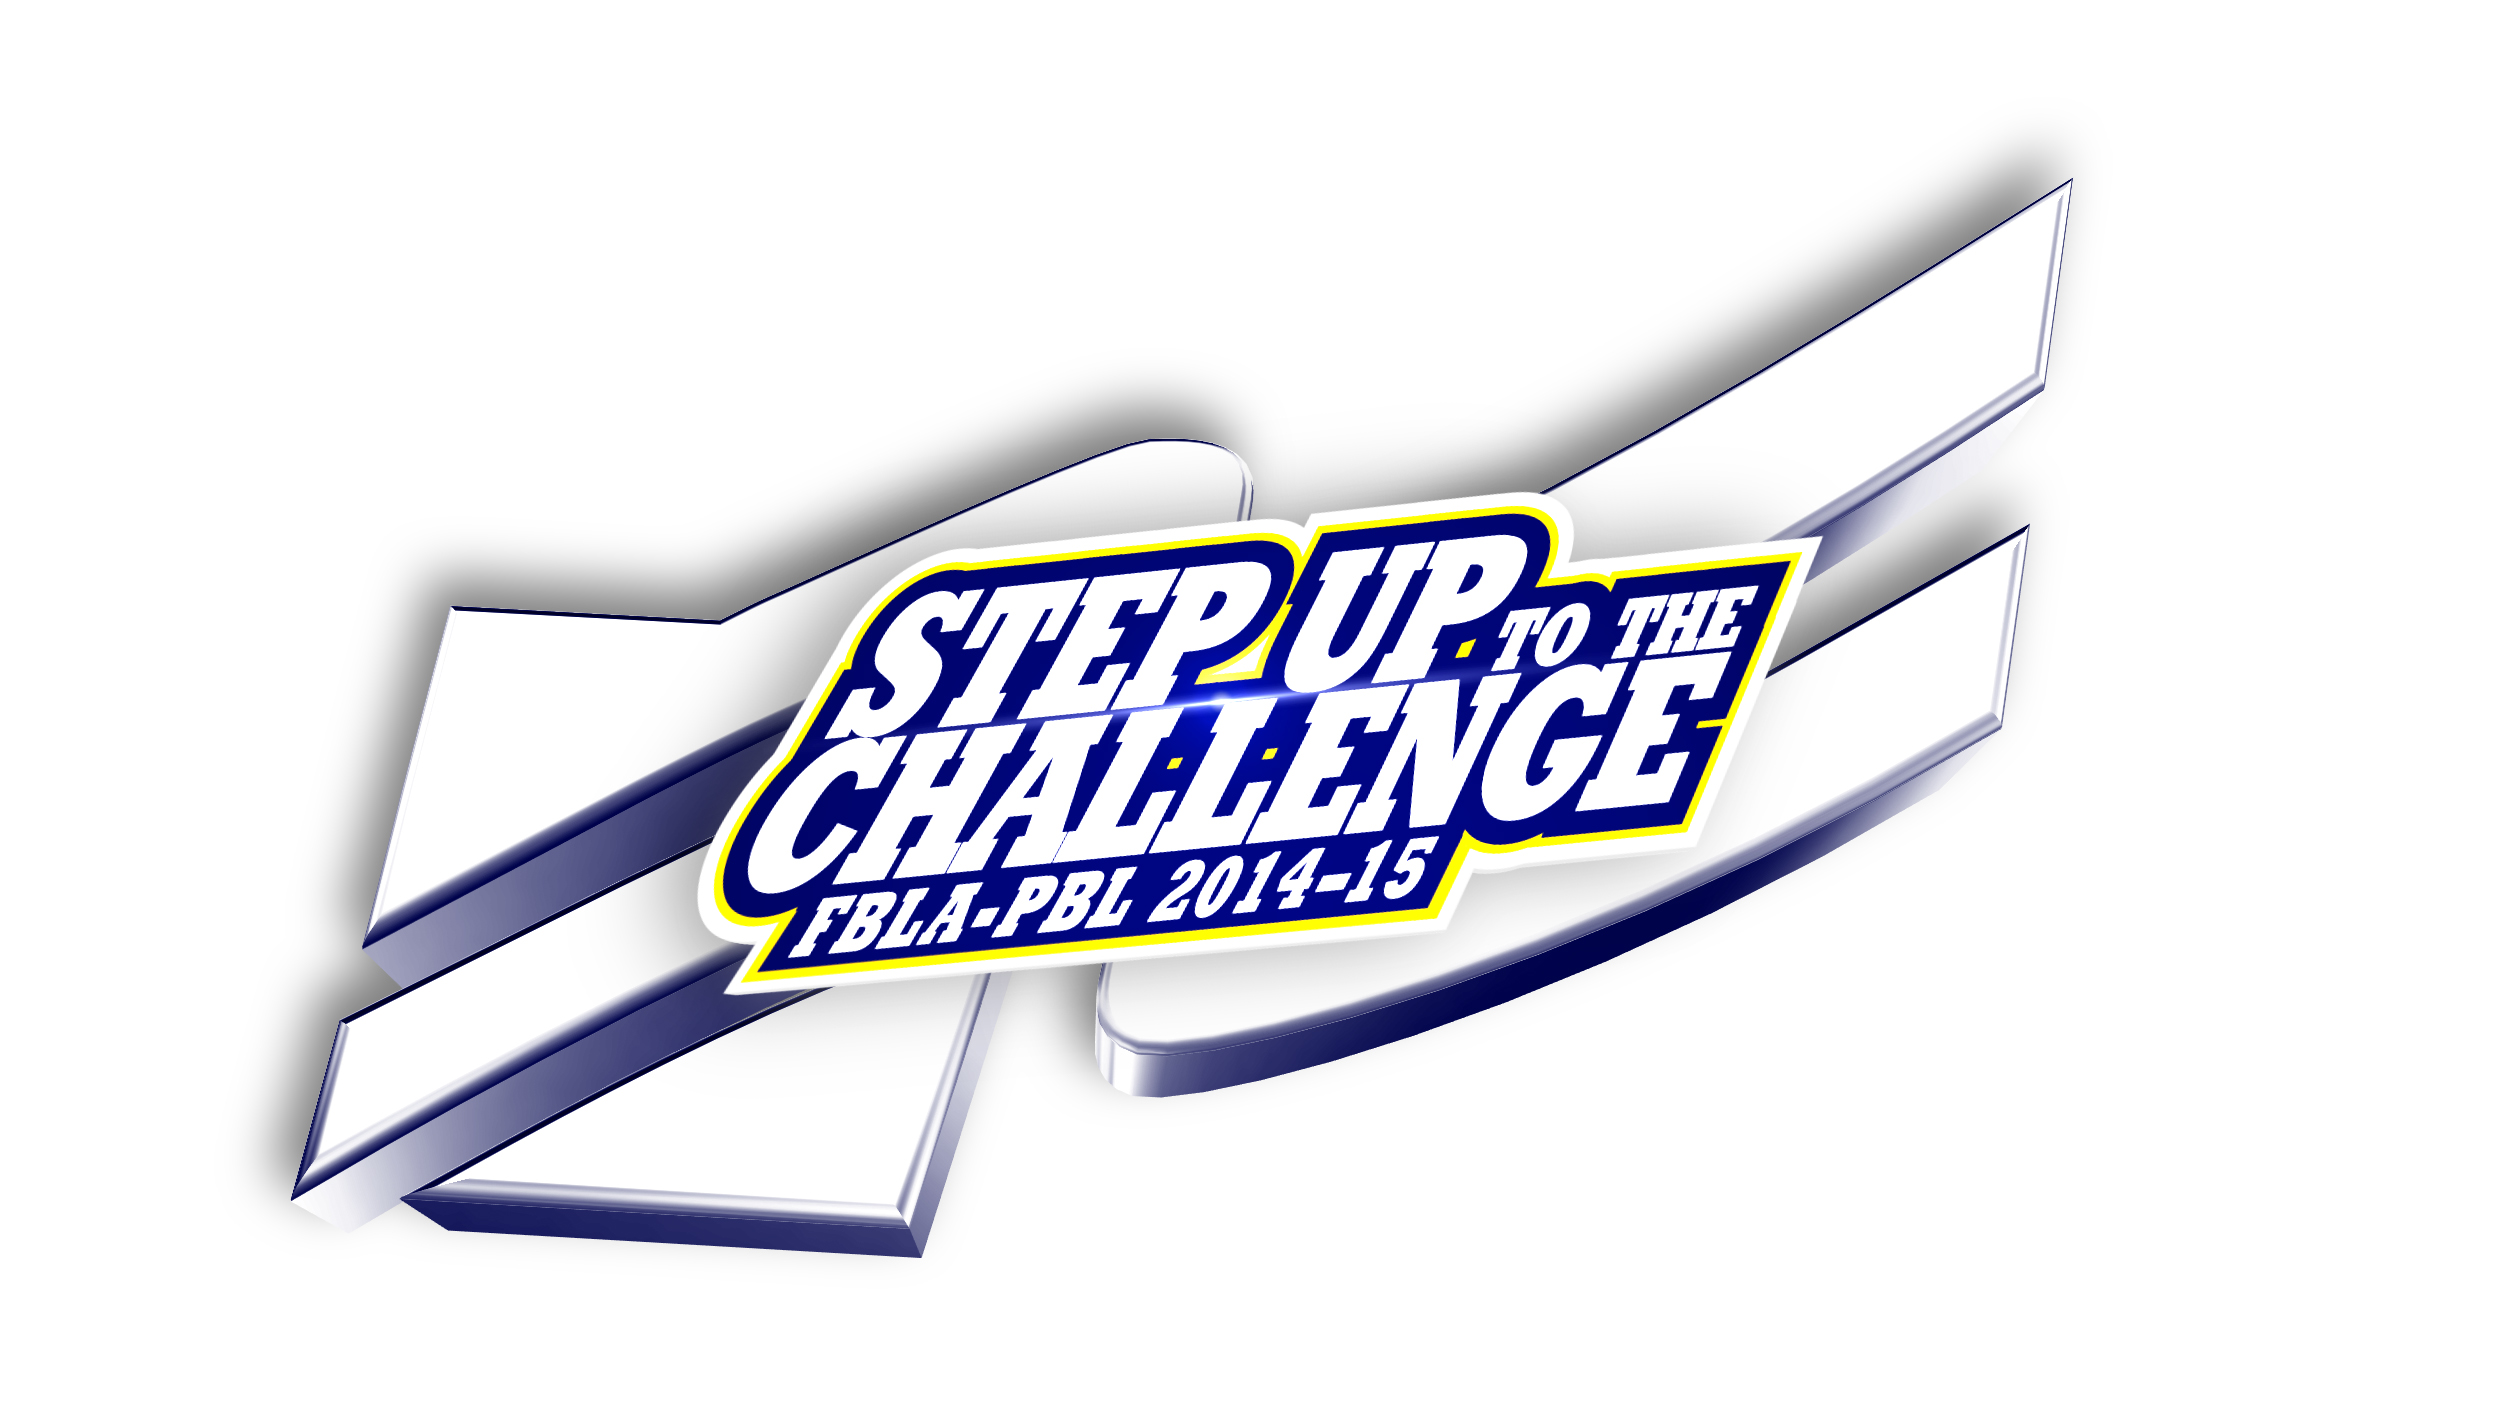 Step Up to the Challenge